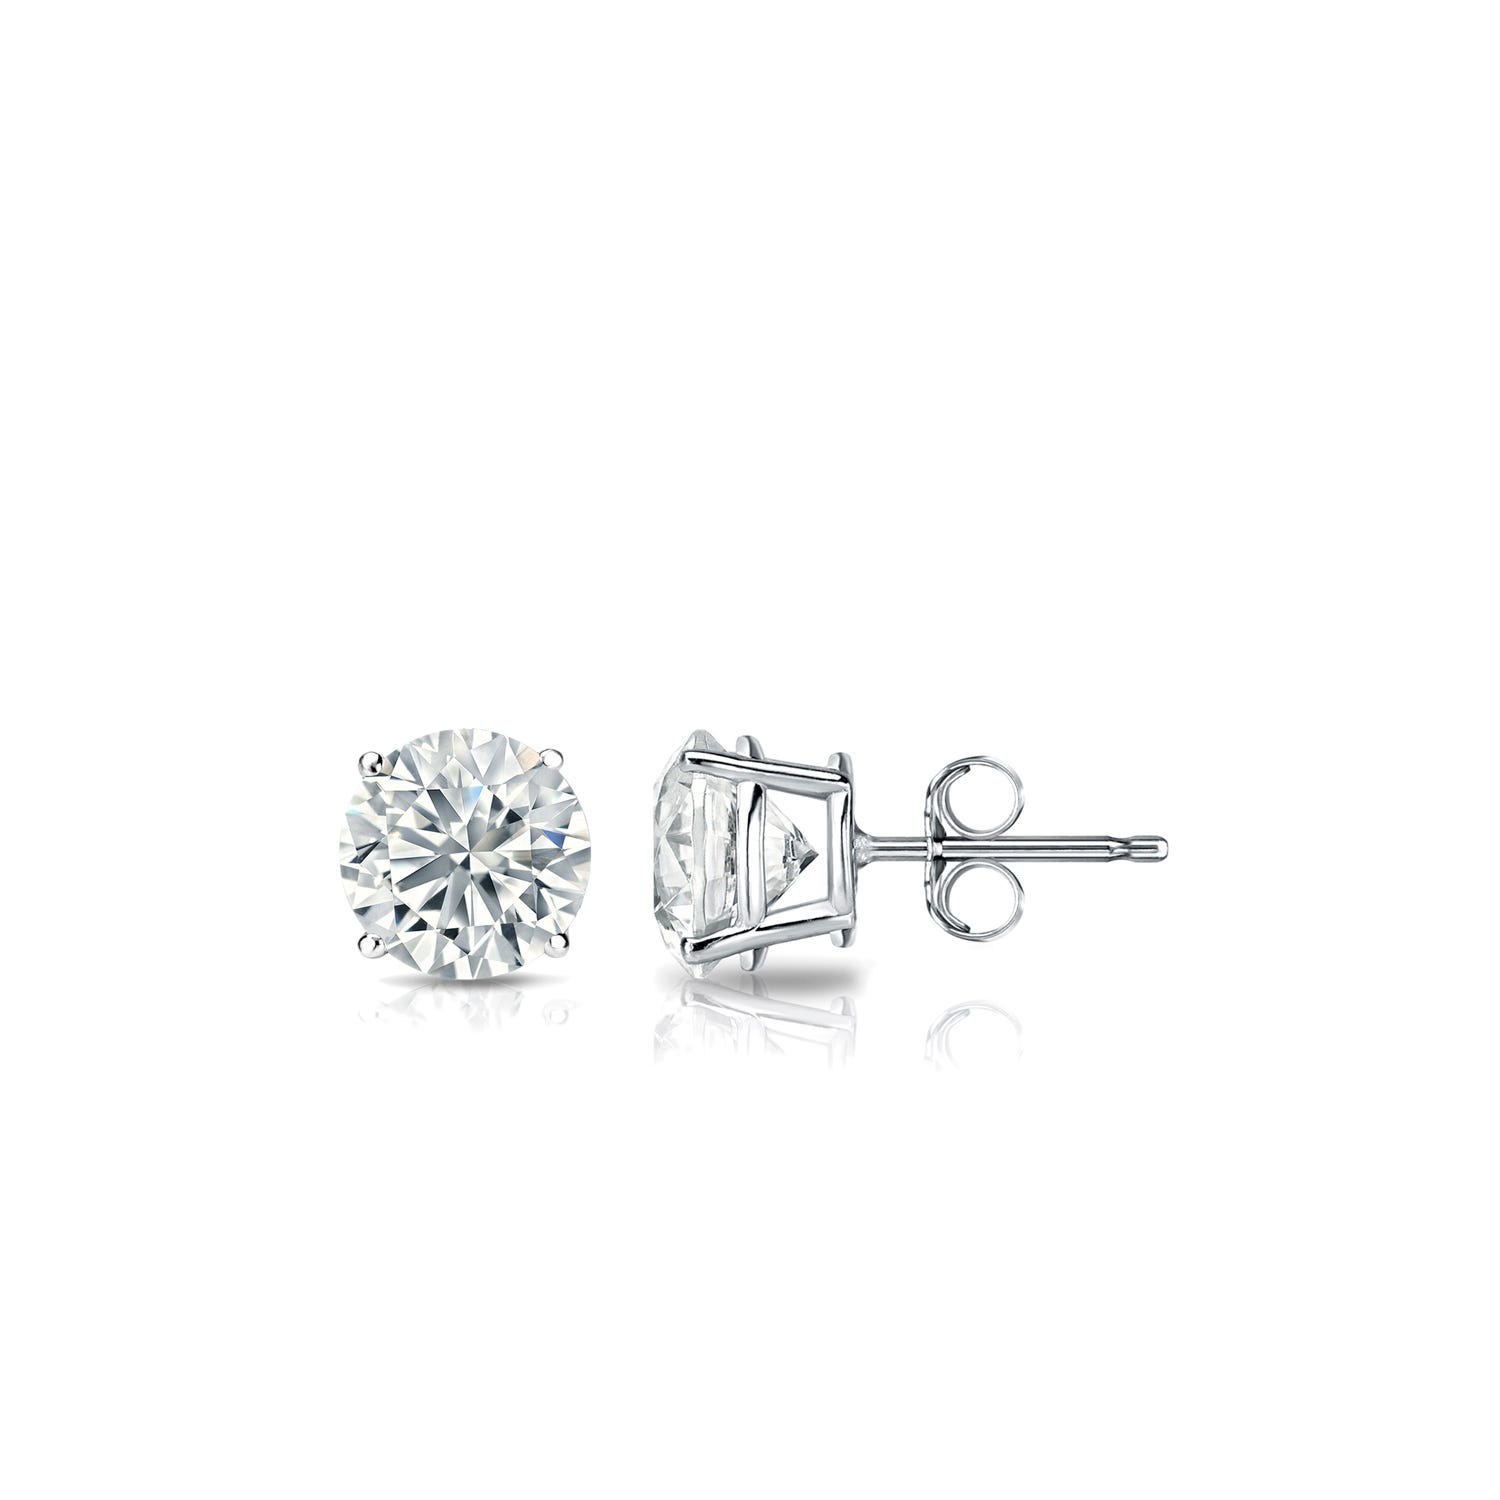 Diamond 3/8ctw. Round Solitaire Stud Earrings (I-J, VS2) Platinum